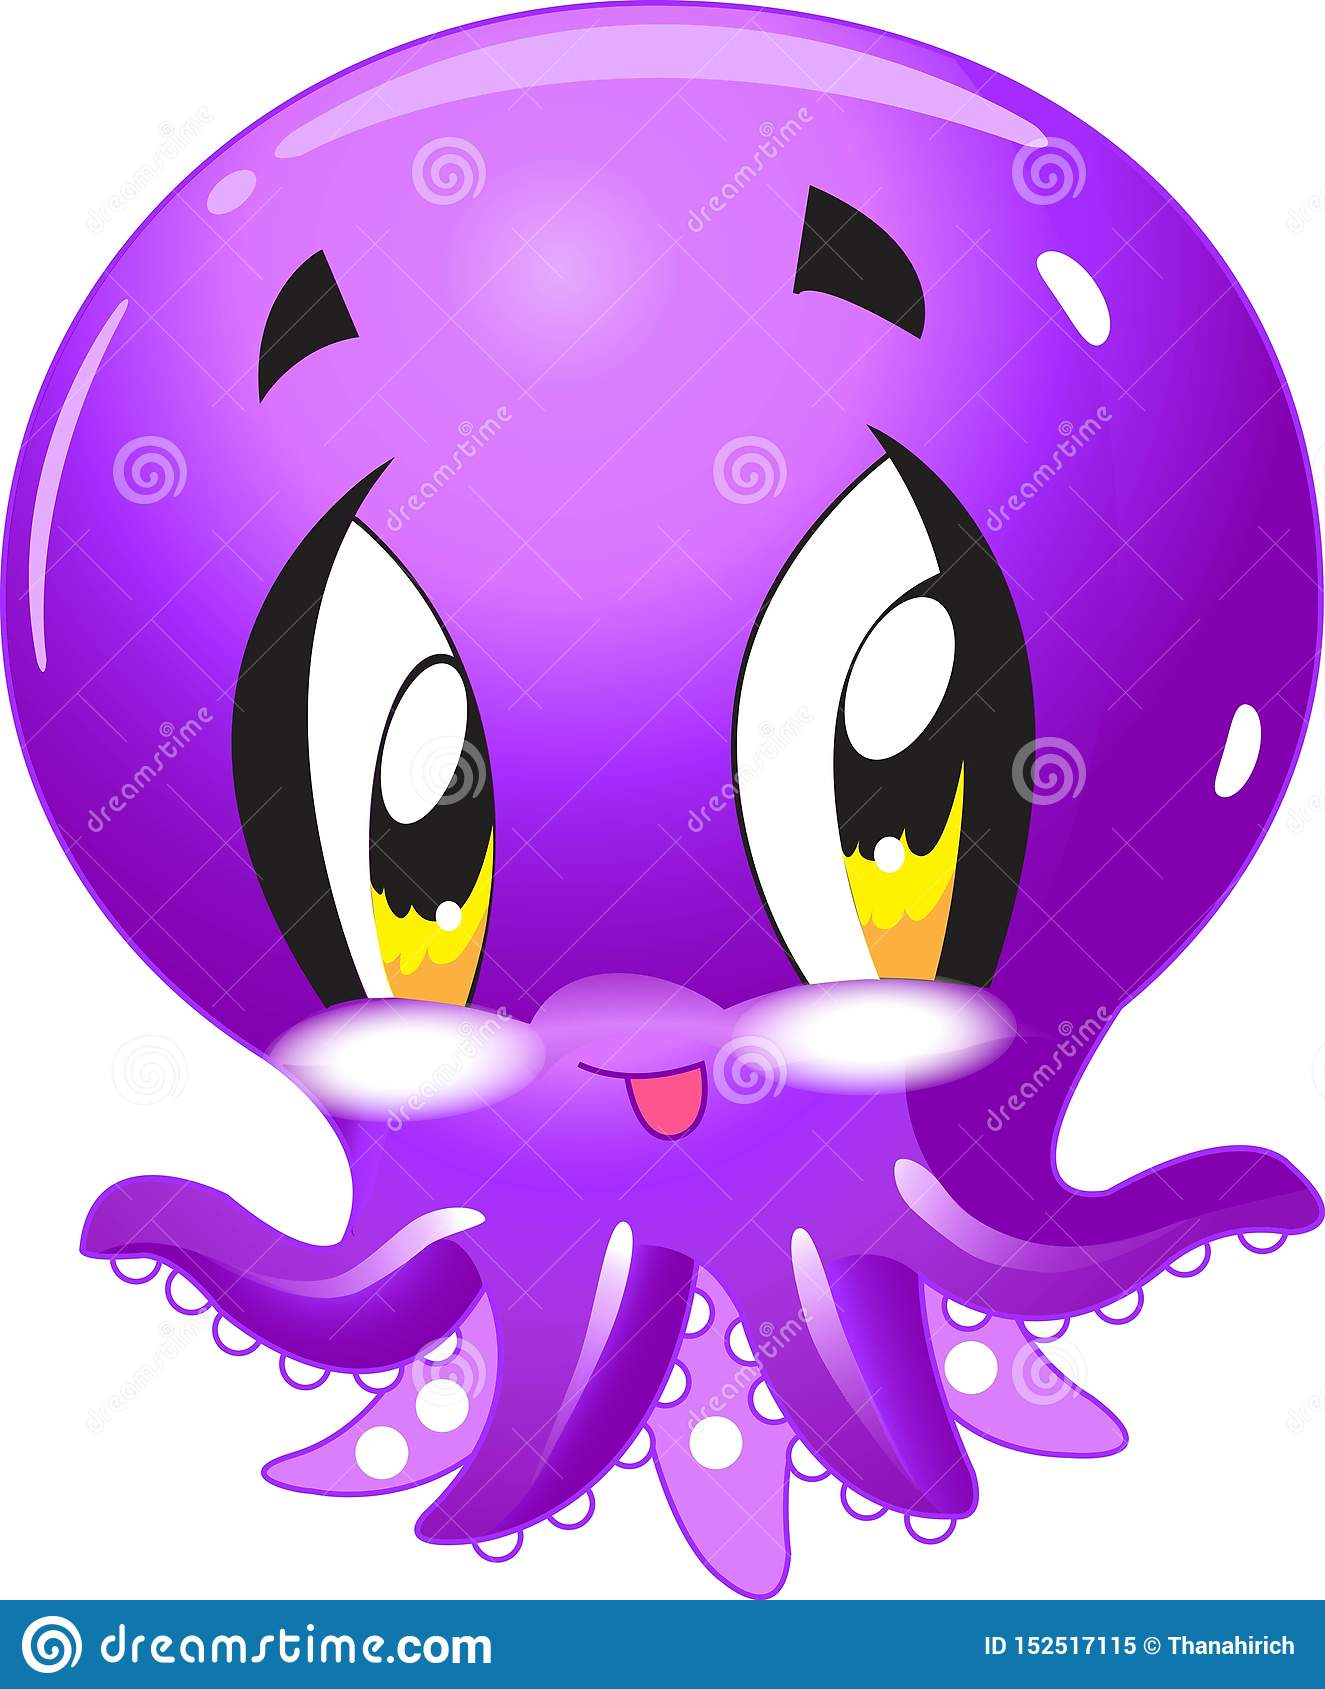 Cartoon Octopus And Owl Alphabet Tracing Worksheet Writing A Z And Educational Game For Kids